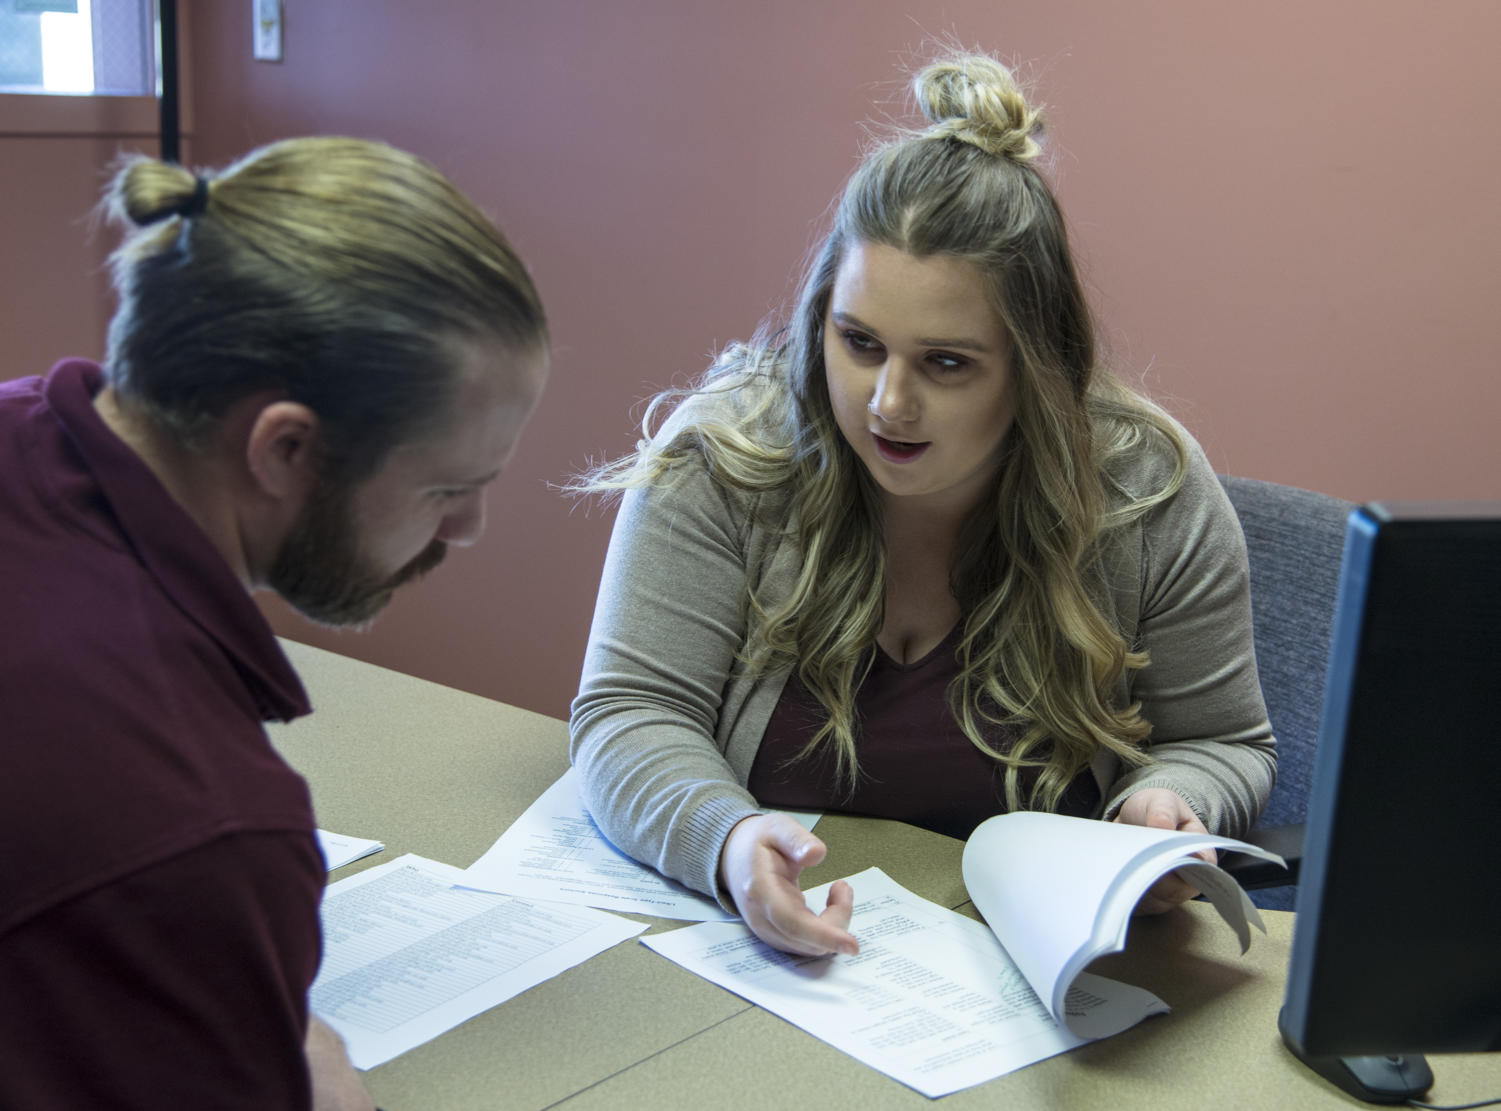 From left: Michael Justin Miller, 26, of Louisville, Kentucky,and Allysha Kochrnour, 25, of Millersburg Pennsylvania, review surveys Friday, Feb. 2, 2018, at DxR Development Group Inc. in the SIU Research Park. Both Miller and Kochenour are graduate students in Applied Psychology involved in the Applied Research Consultants firm at SIU. (Mary Newman | @MaryNewmanDE)